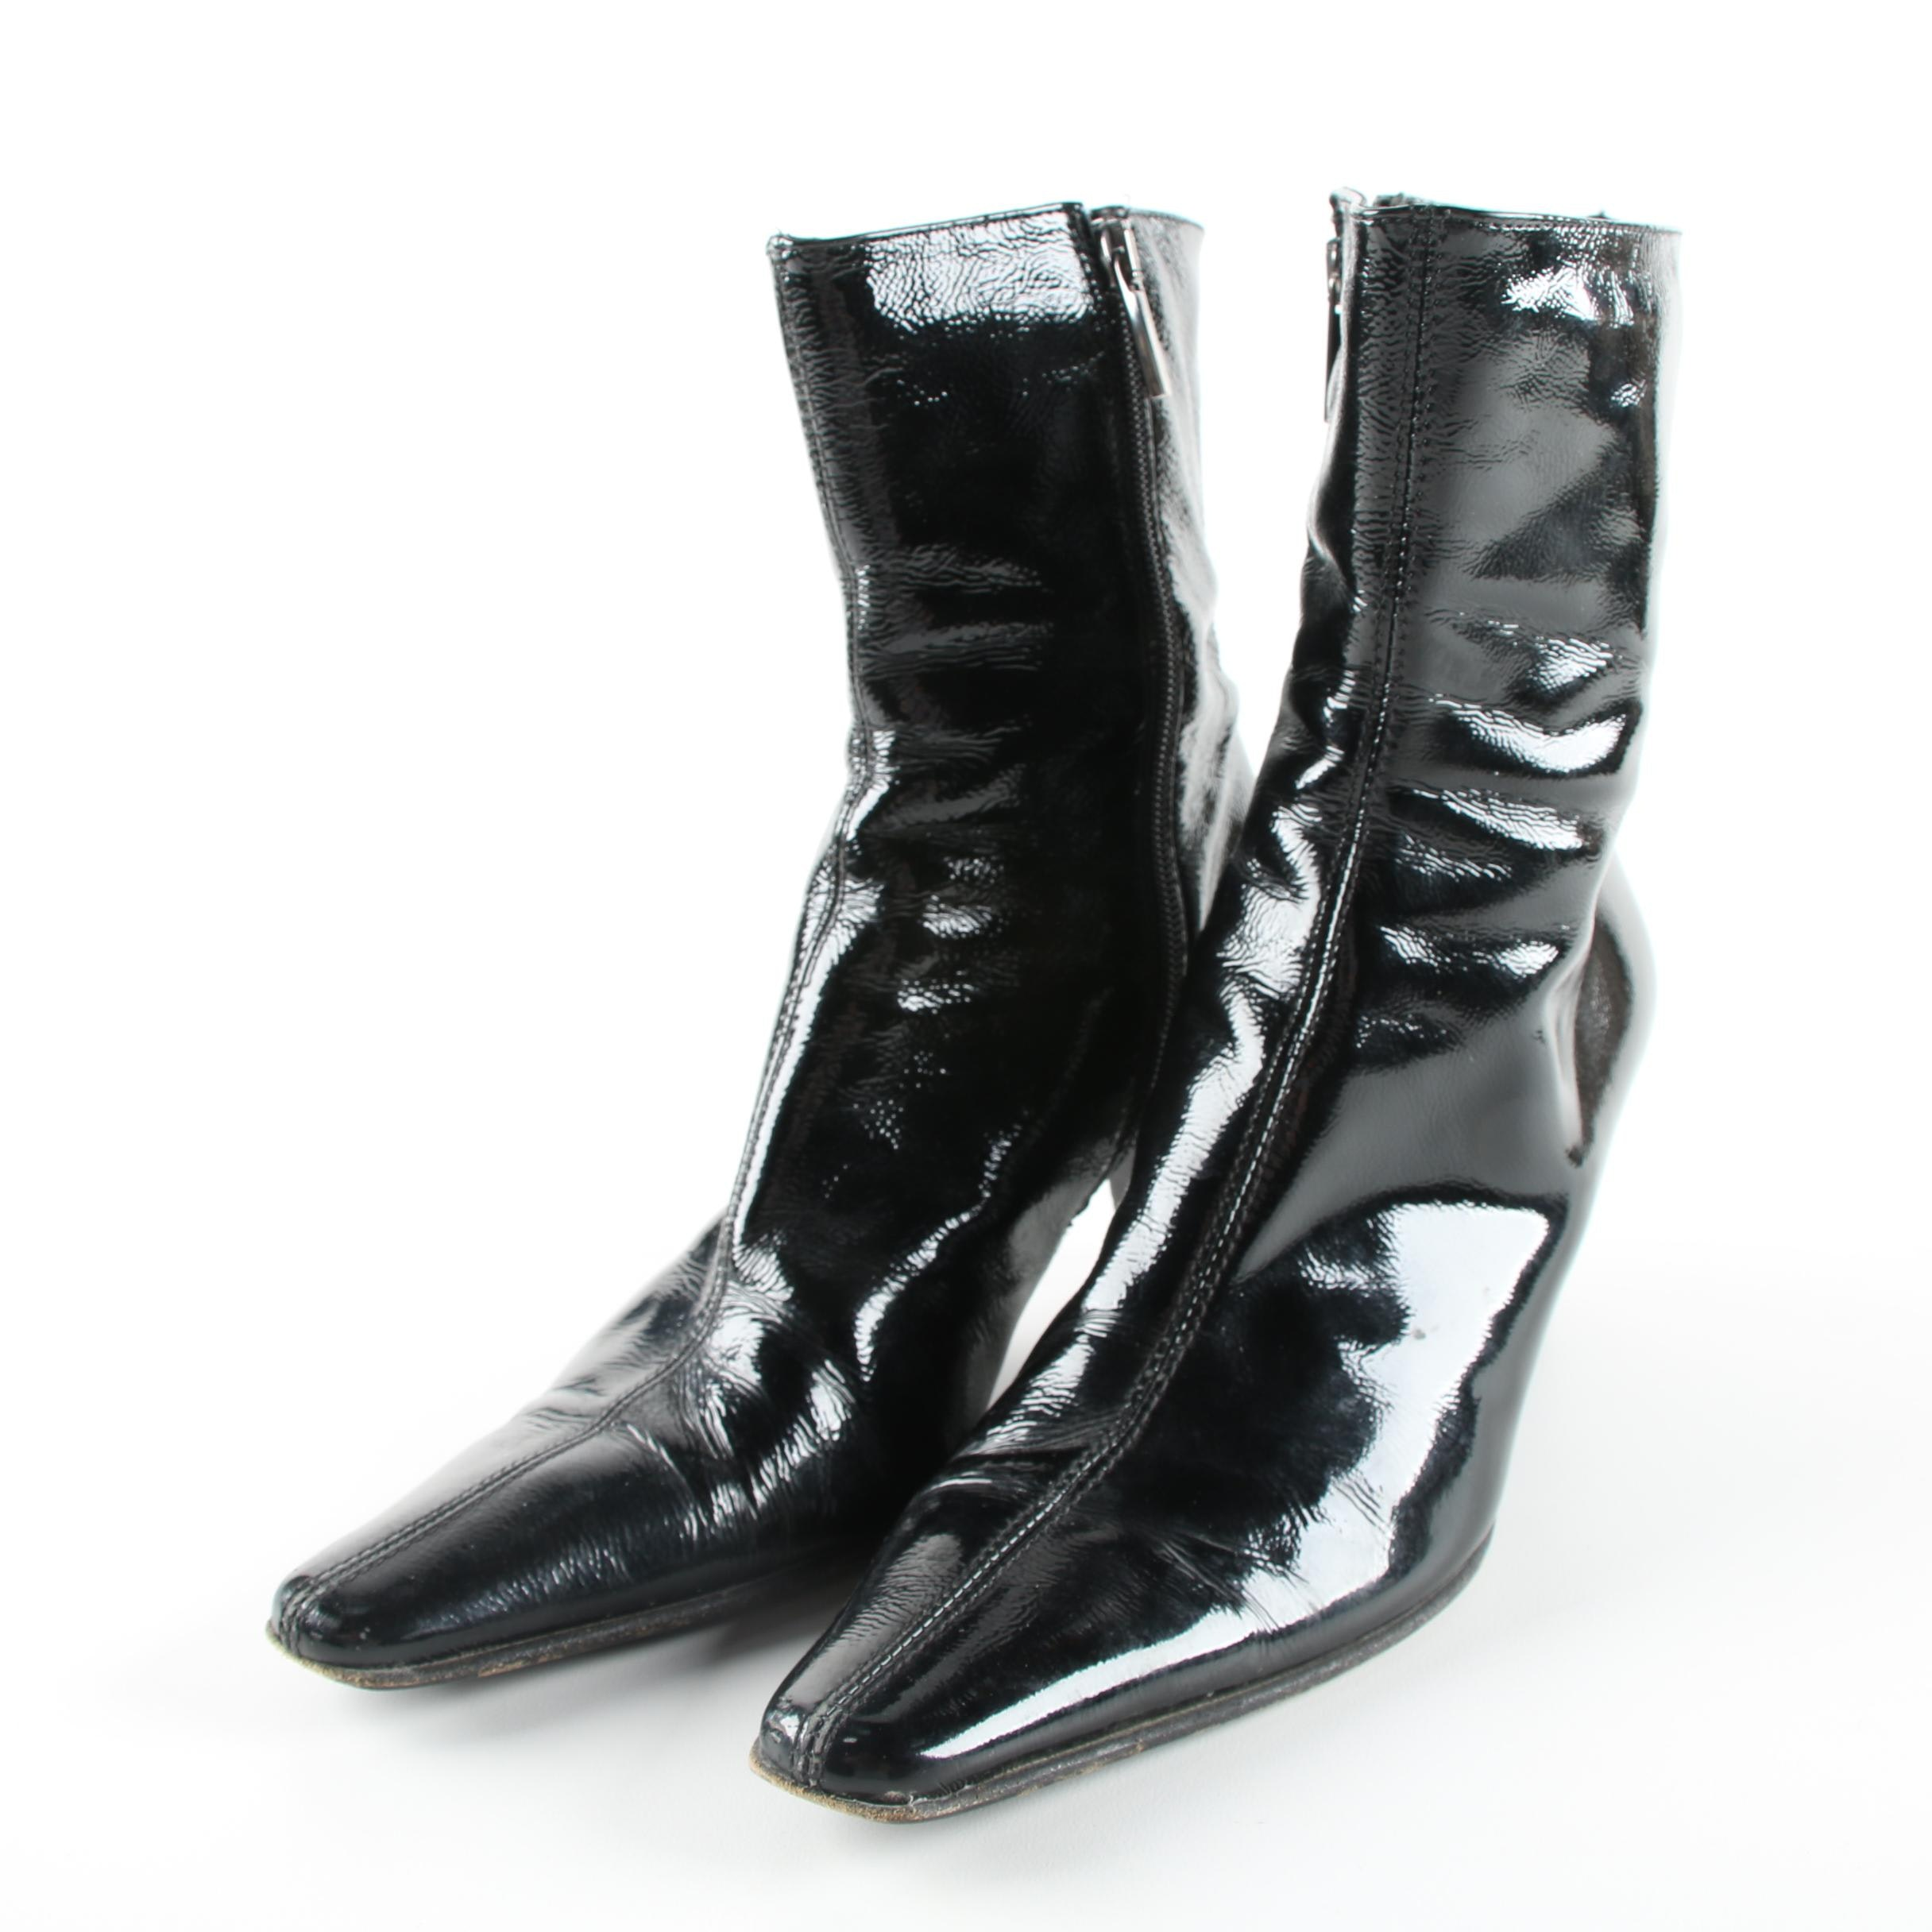 Women's Black Patent Leather High Heeled Booties